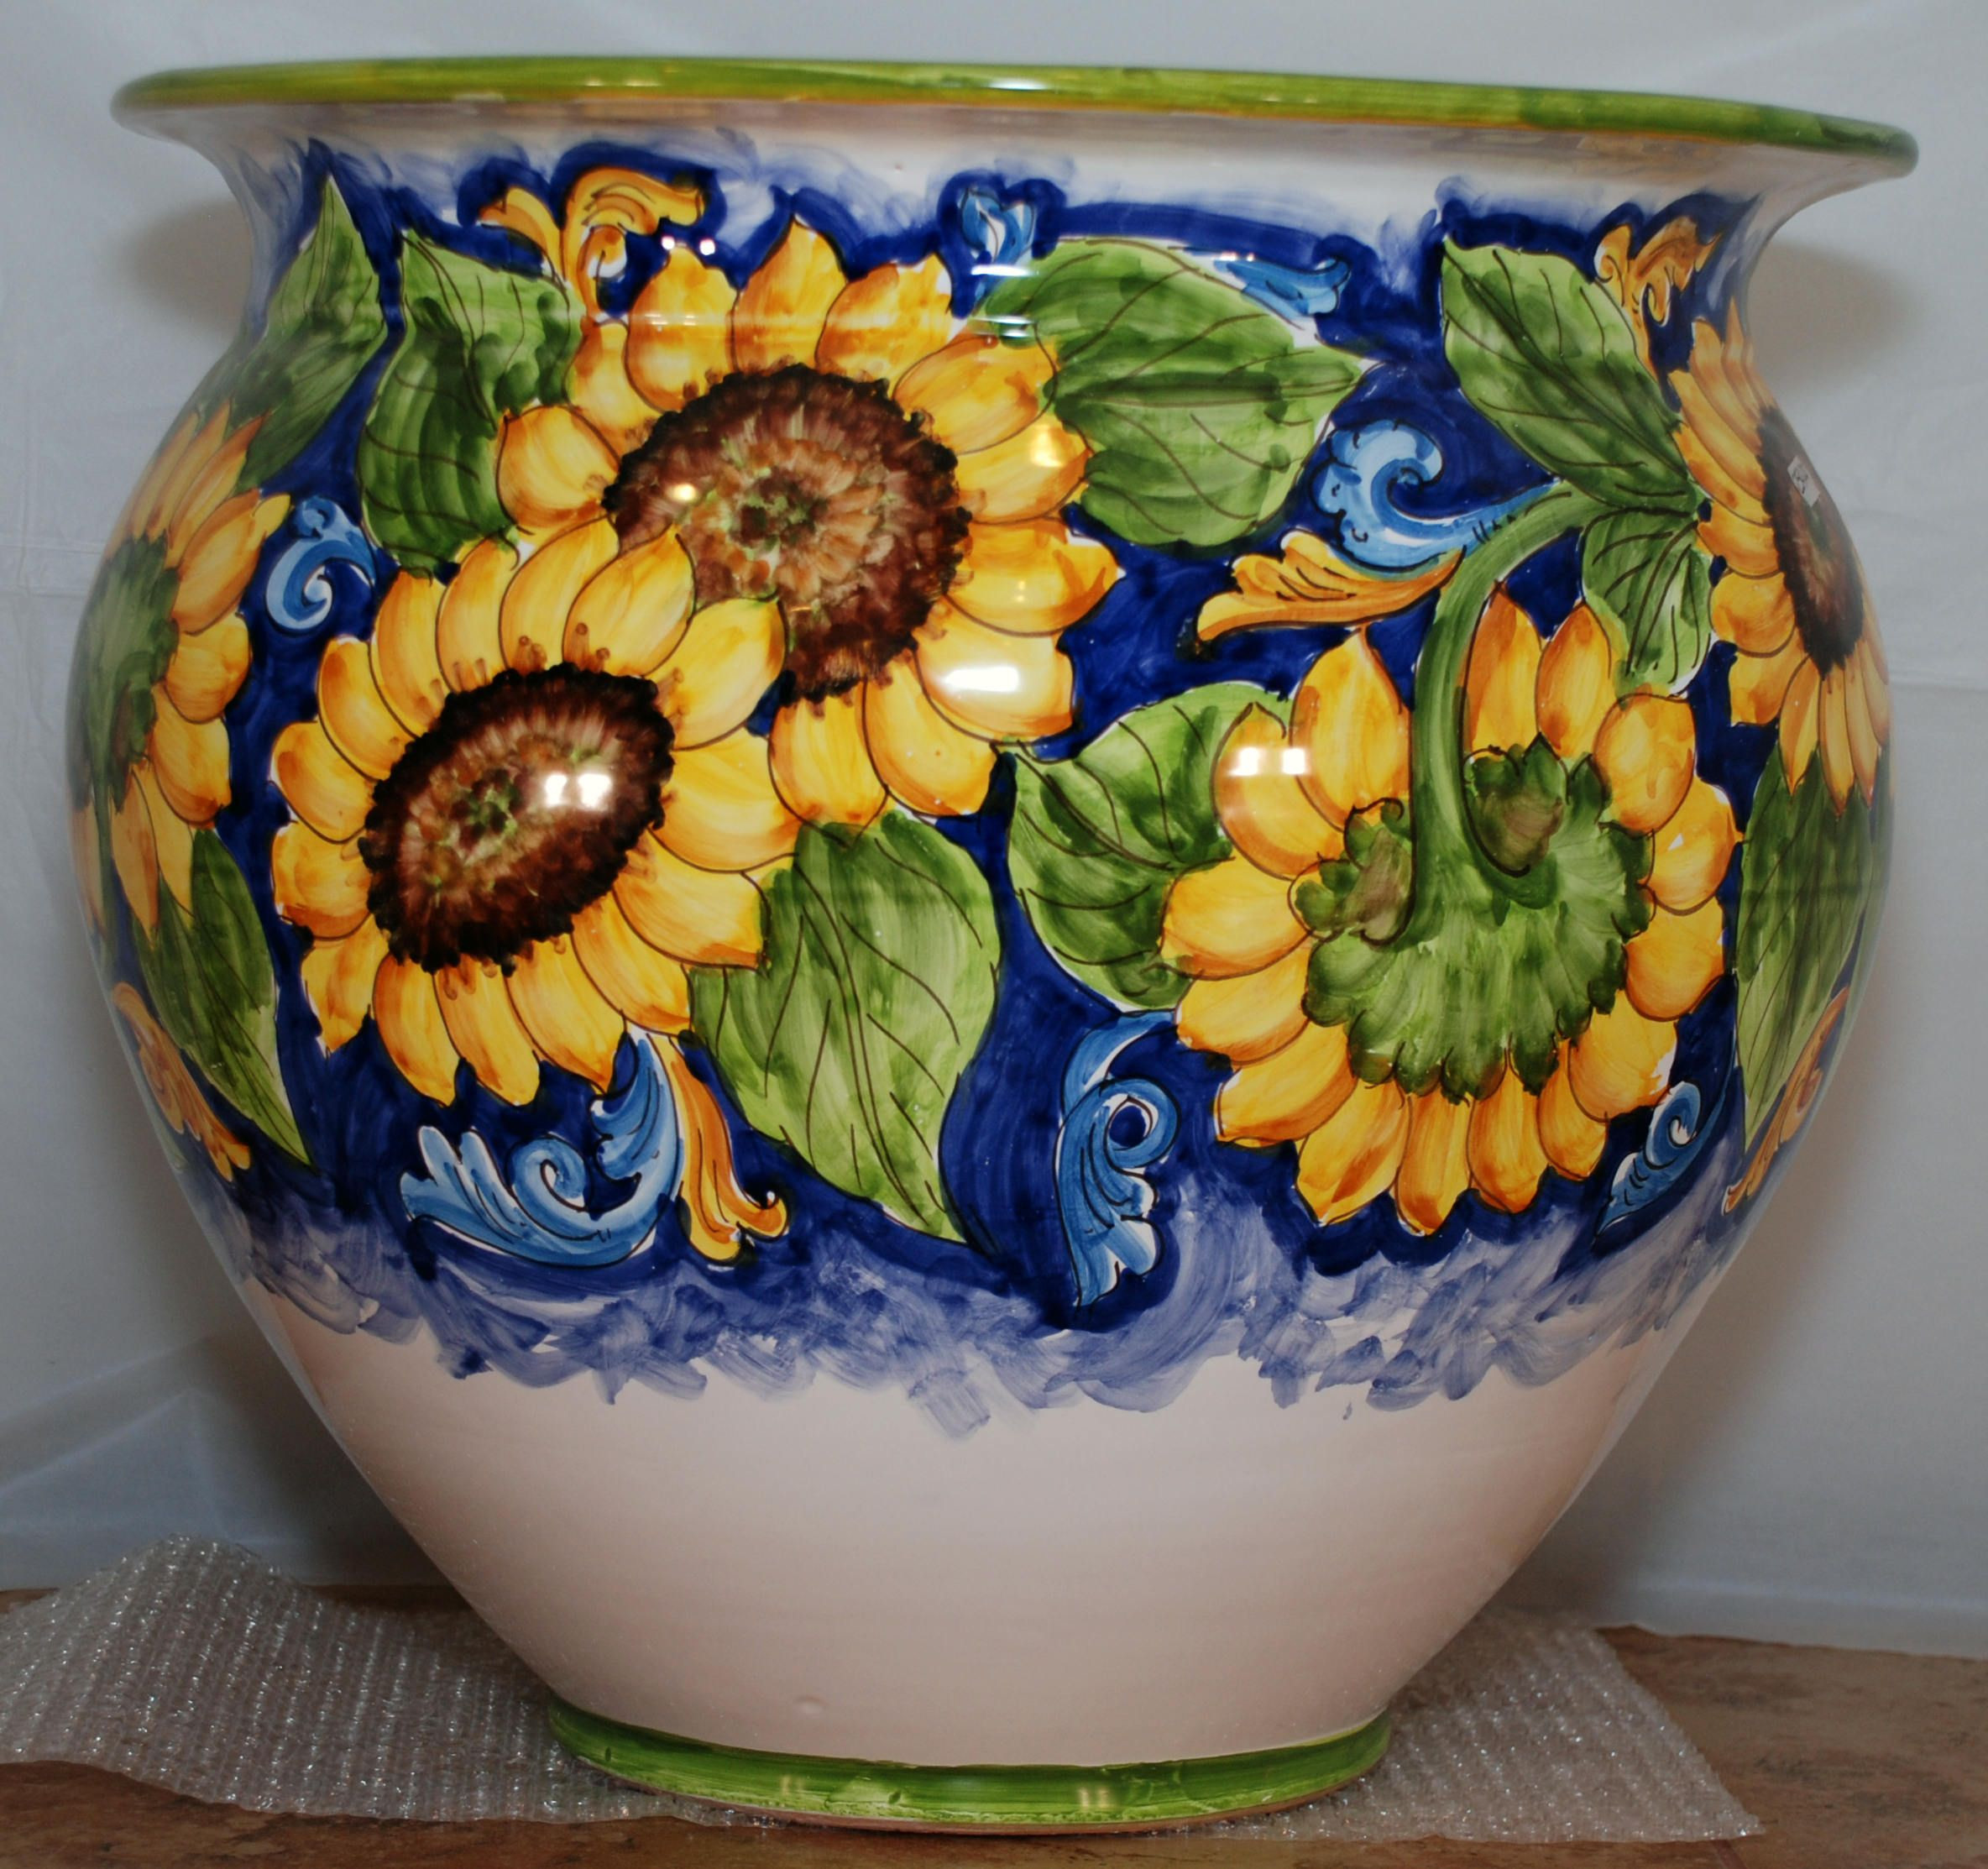 italian ceramic vase of traditional sicilian sunflower decorated vase in 2018 pottery within traditional sicilian sunflower decorated vase by aputiadure on etsy